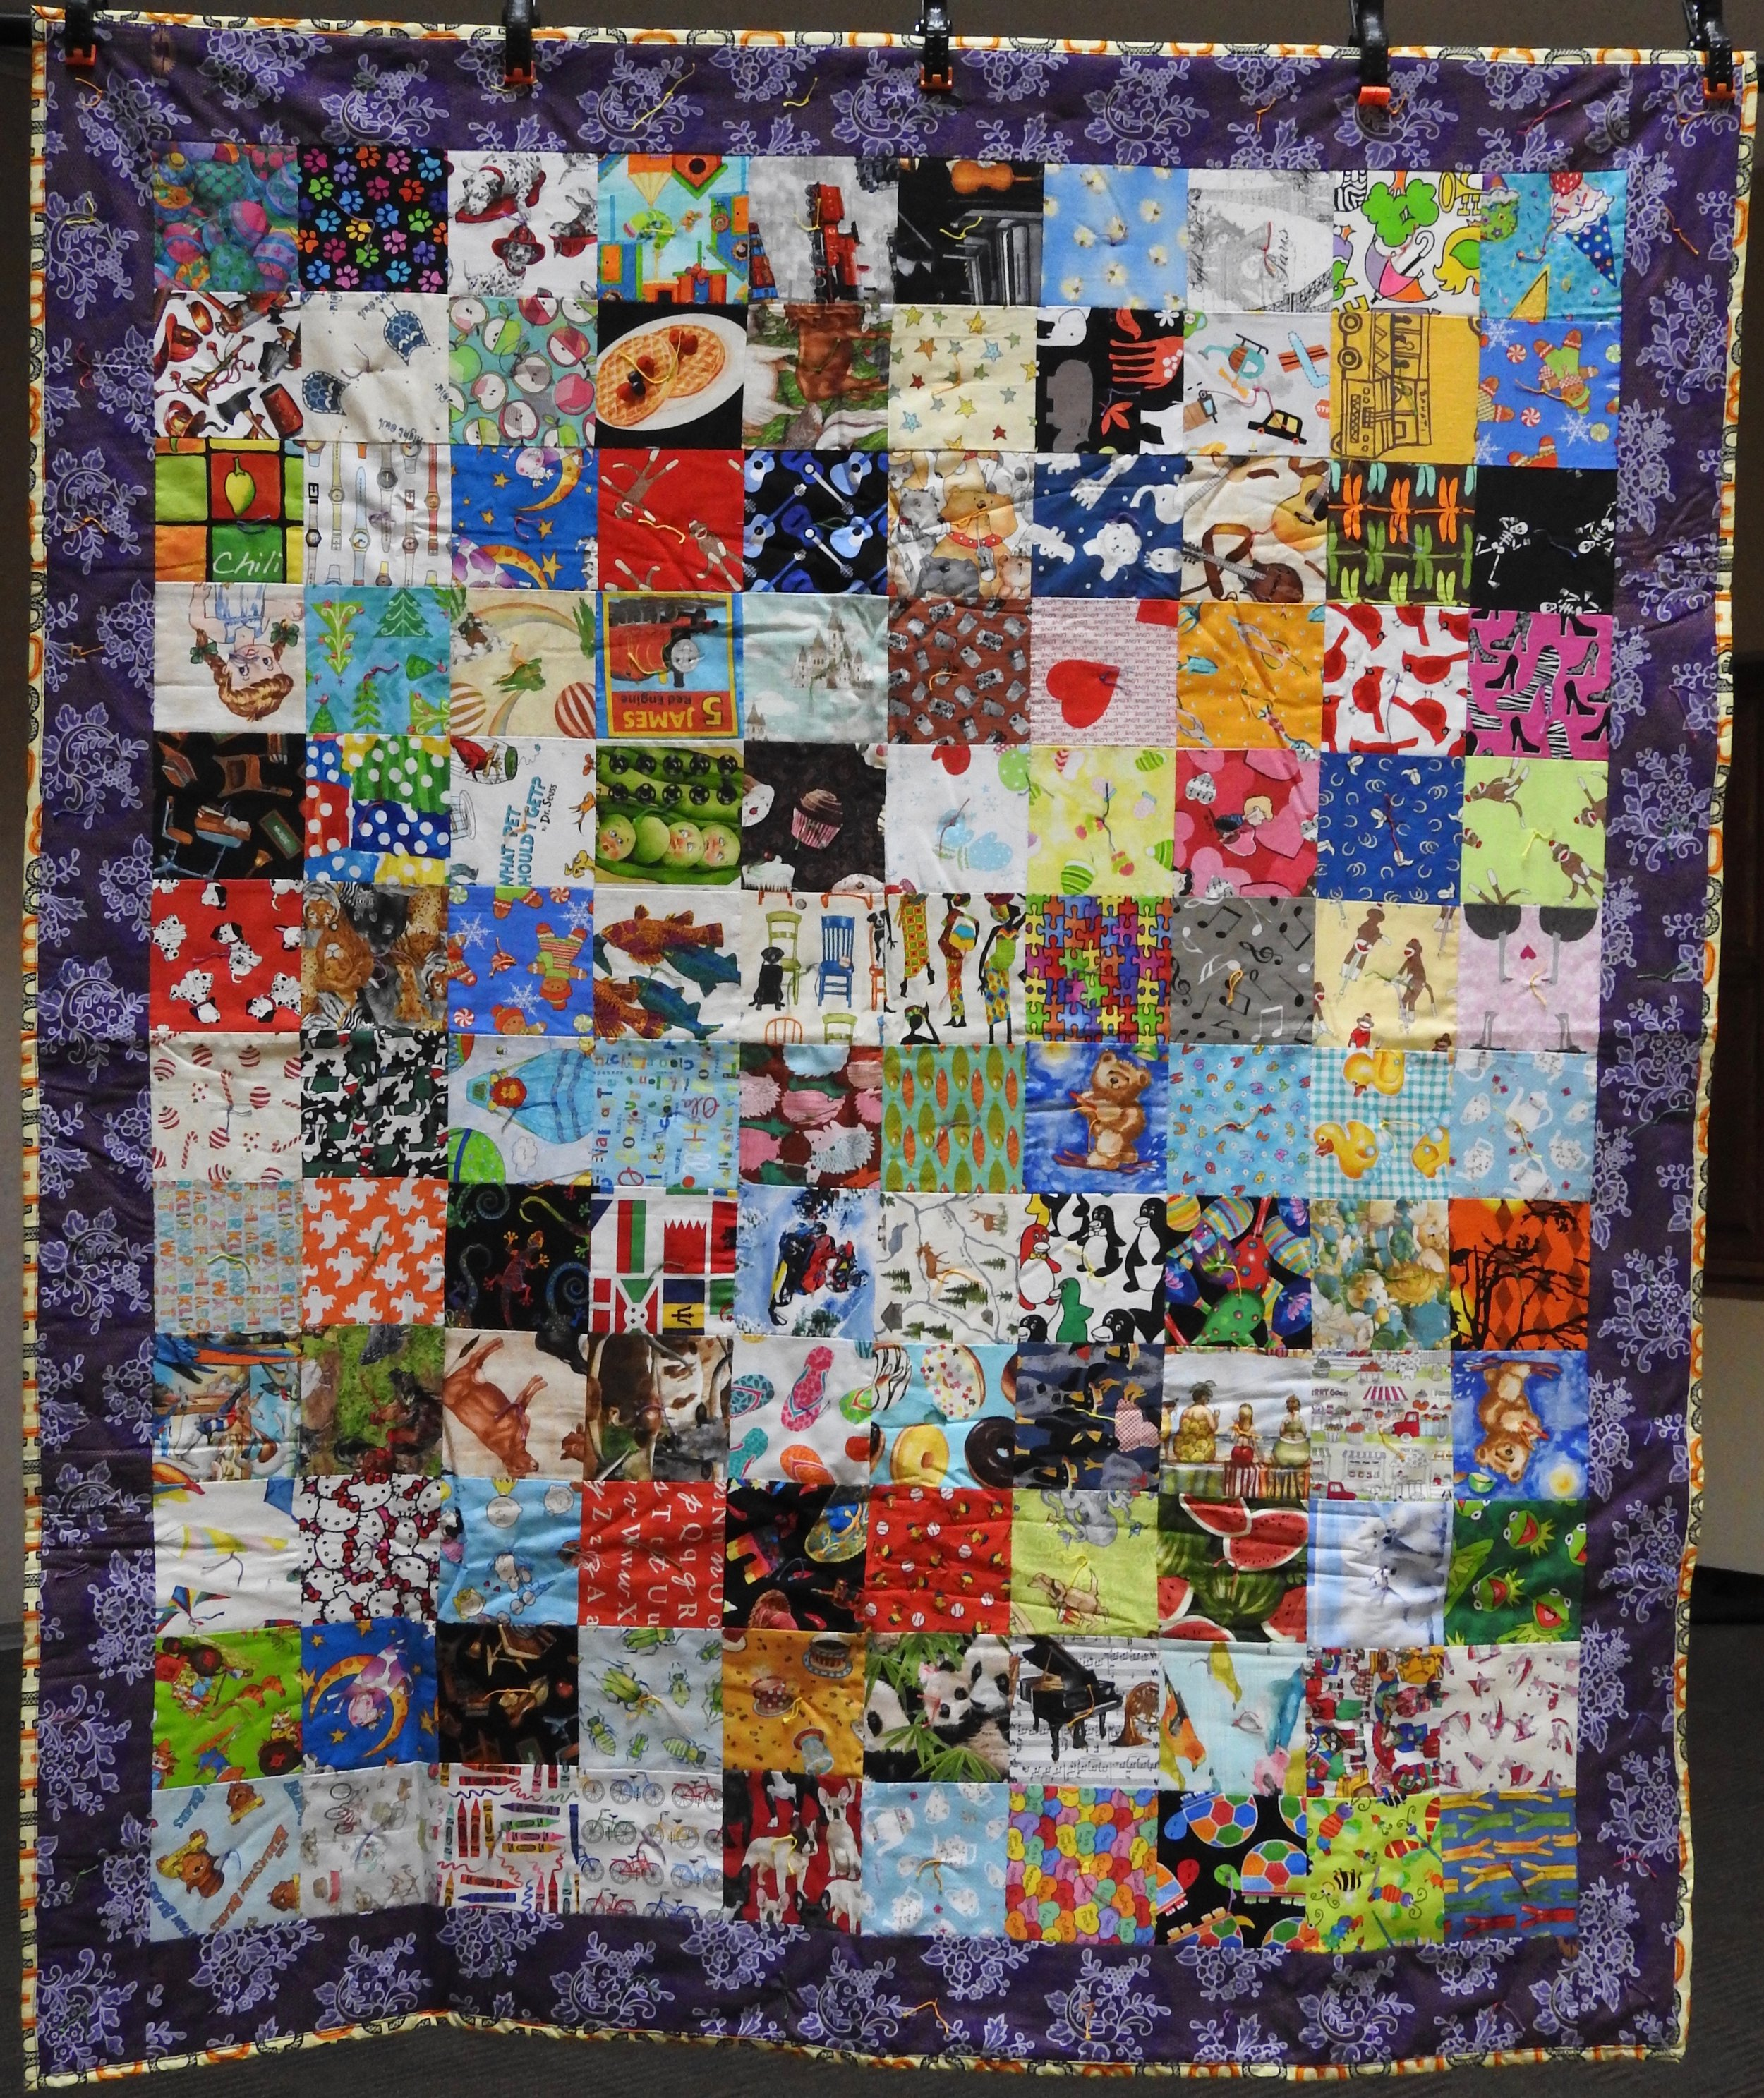 I Spy Comforter, Pieced & Knotted, donated Anonymously, 51 x 62""